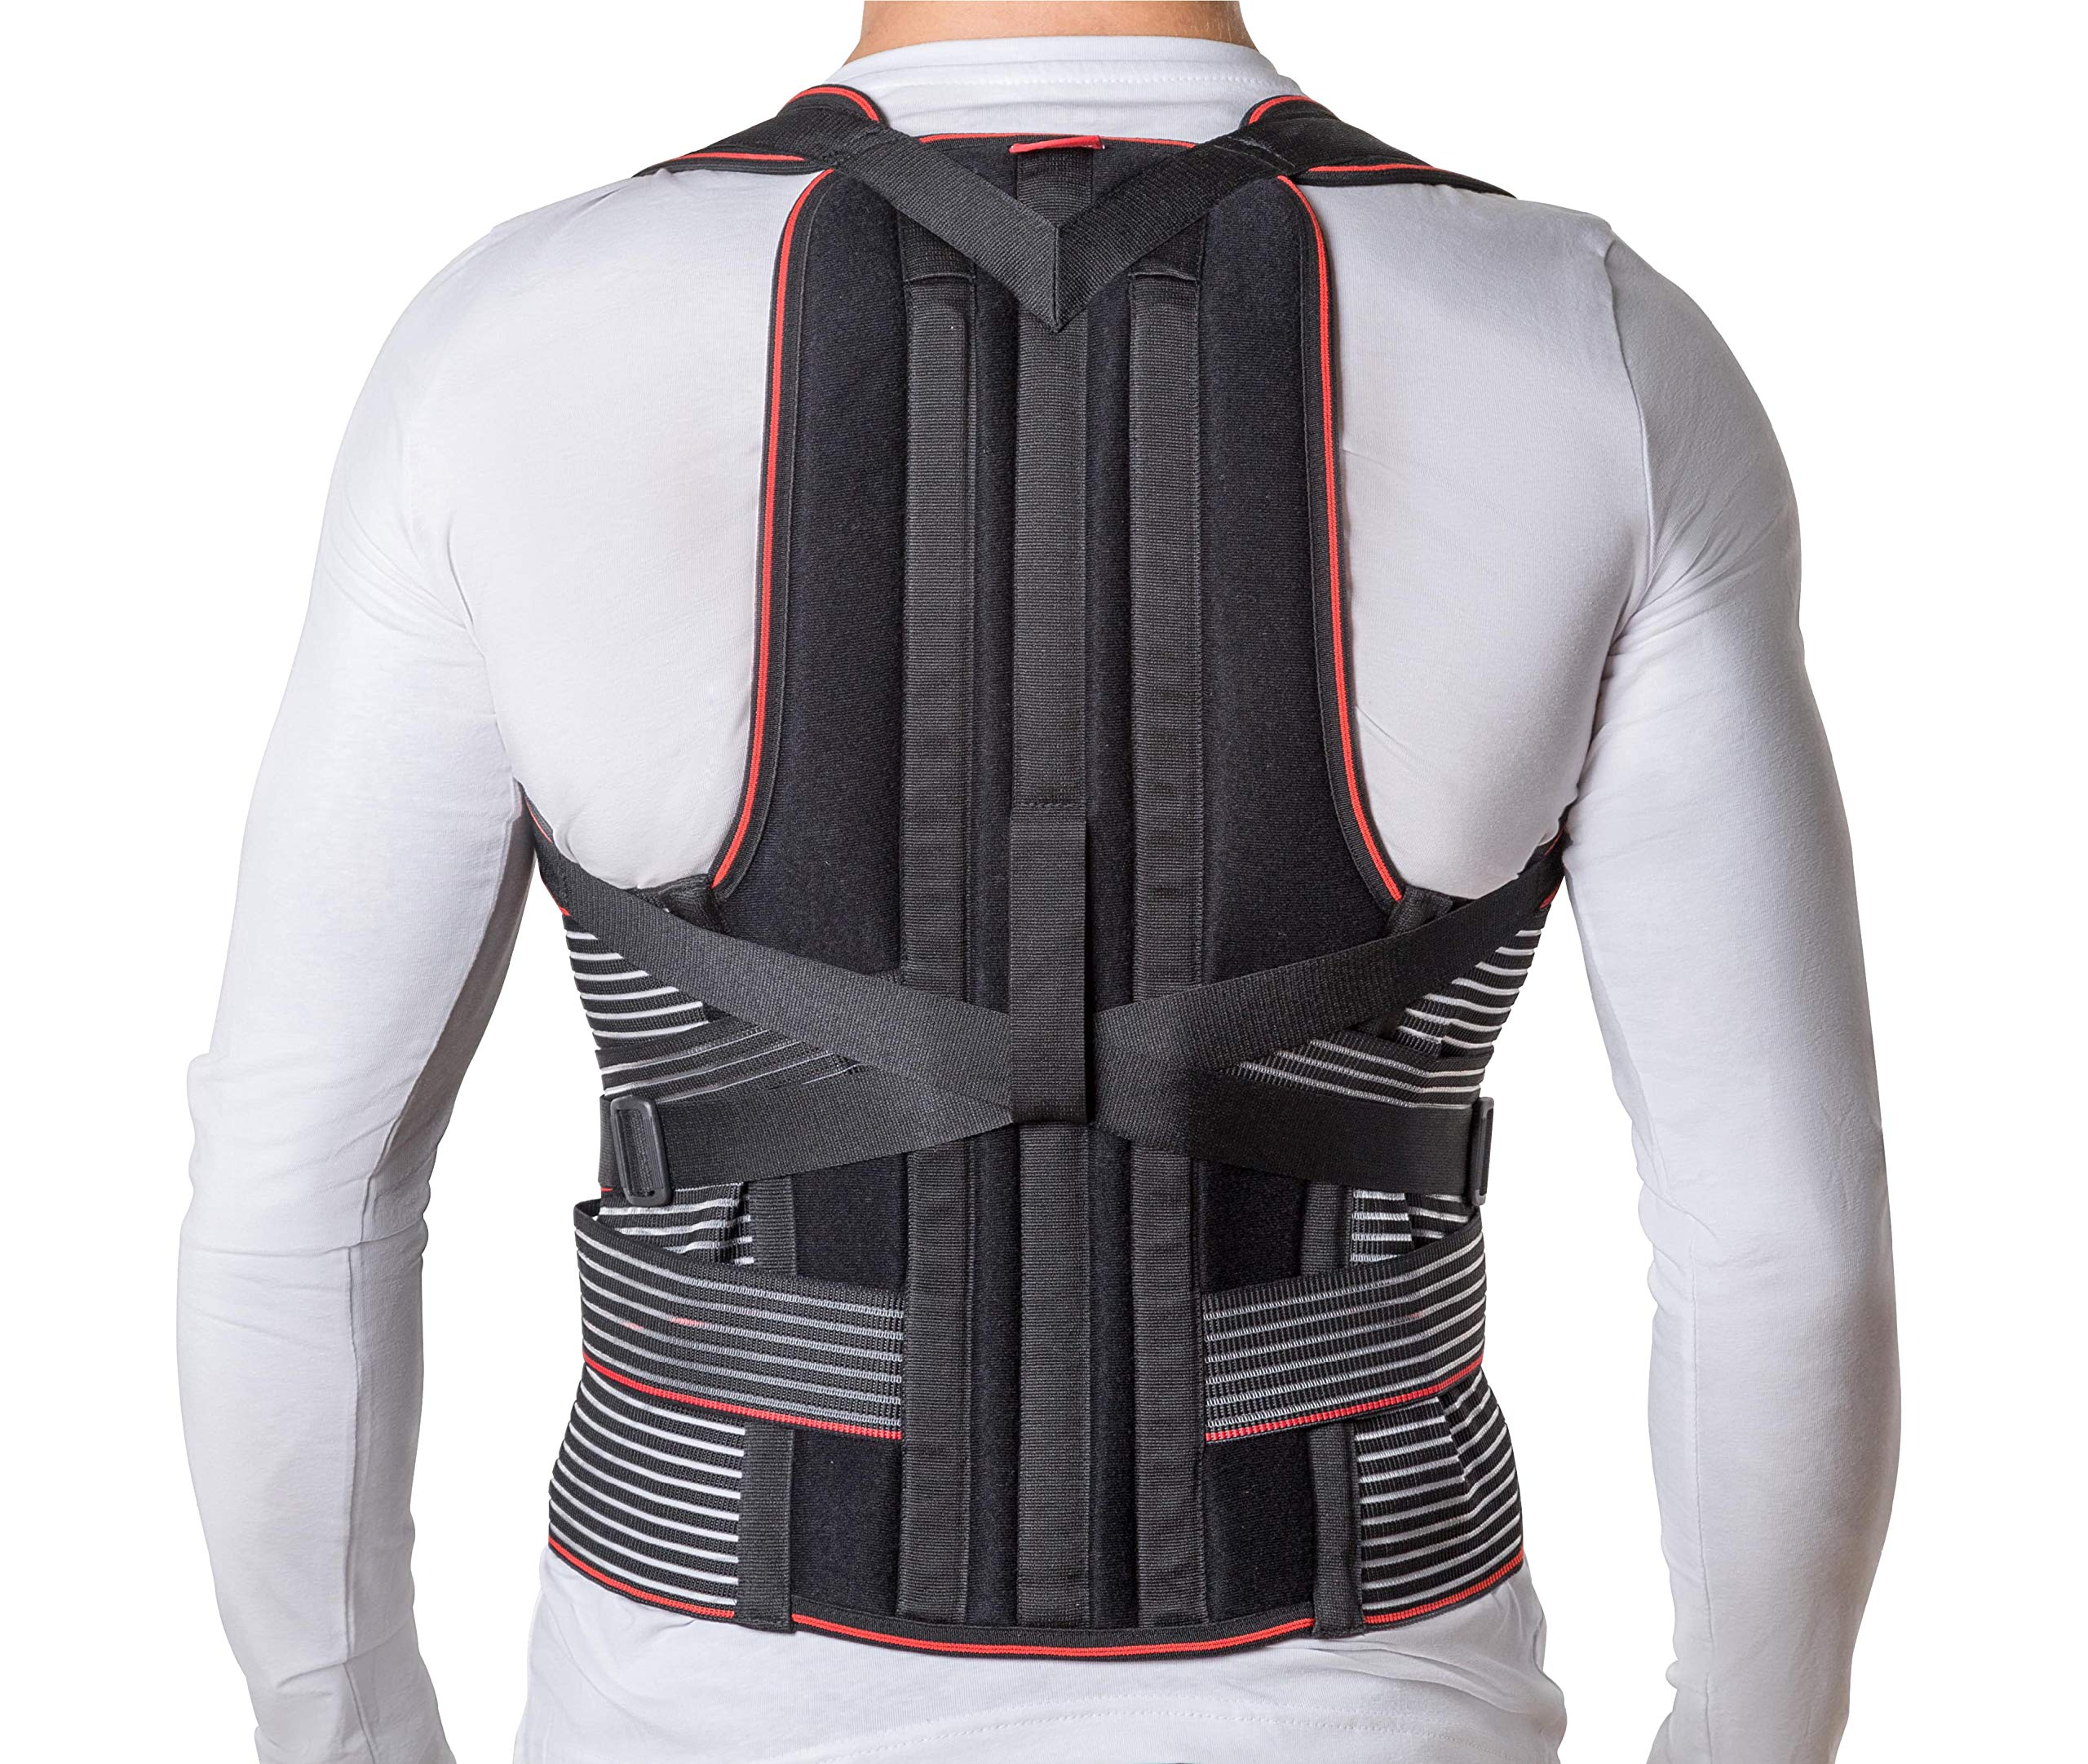 JNTAR Back Brace Posture Corrector for Women & Men, Corset Provides Lumbar & Shoulders Support, Corrects Slouching & Bad Posture, Solution for Kyphosis & Scoliosis, Rigid Fixation (S/I (24-30''))